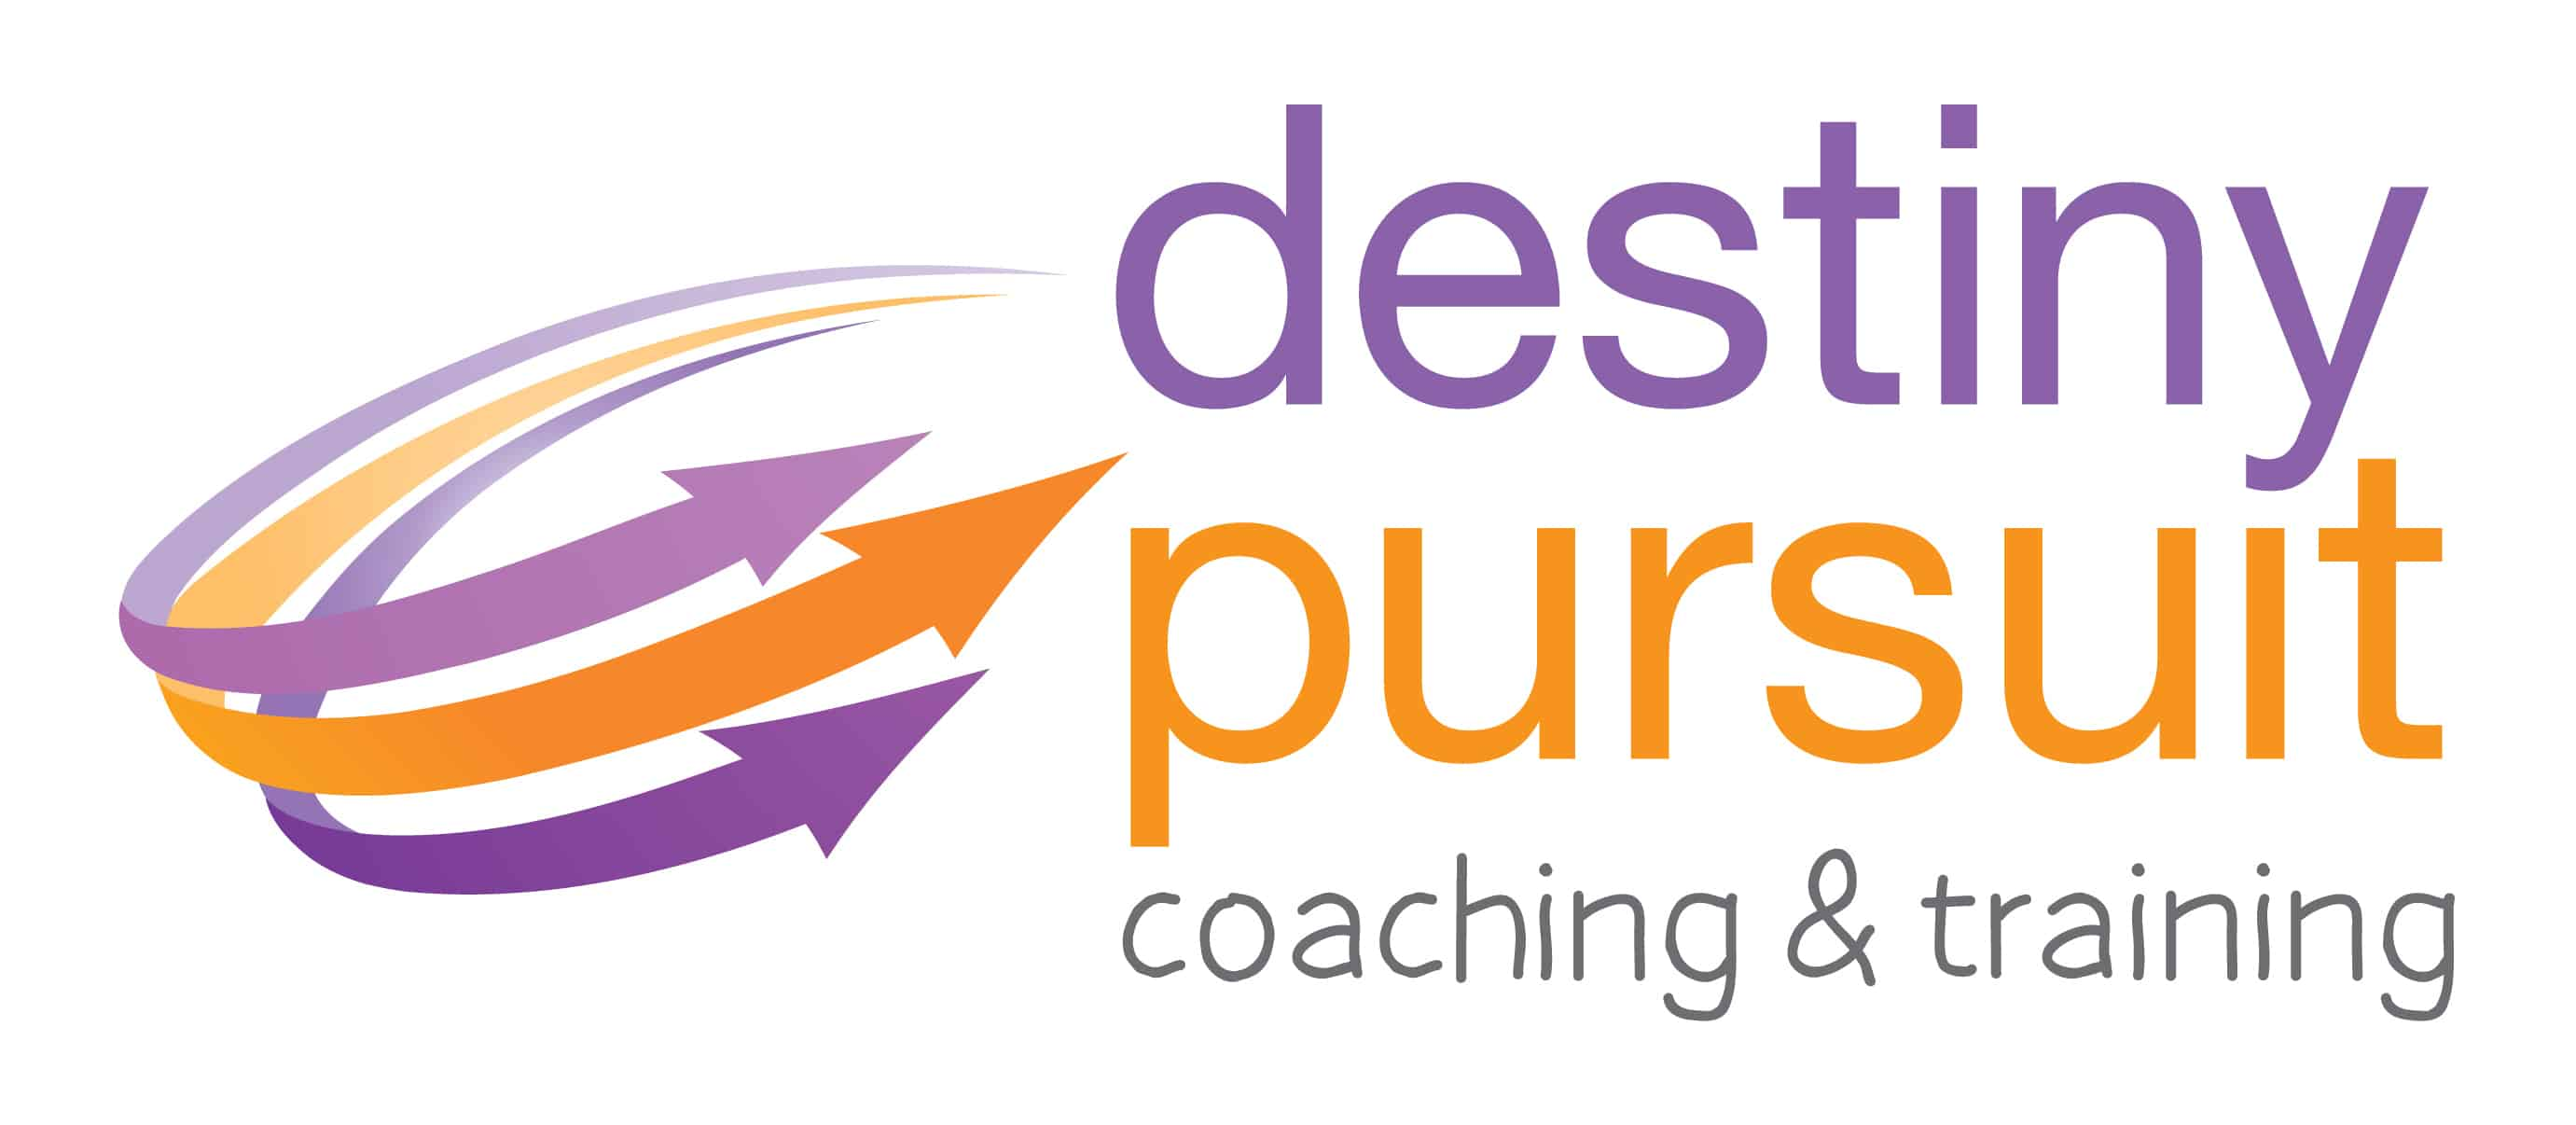 Destiny Pursuit Coaching and Training